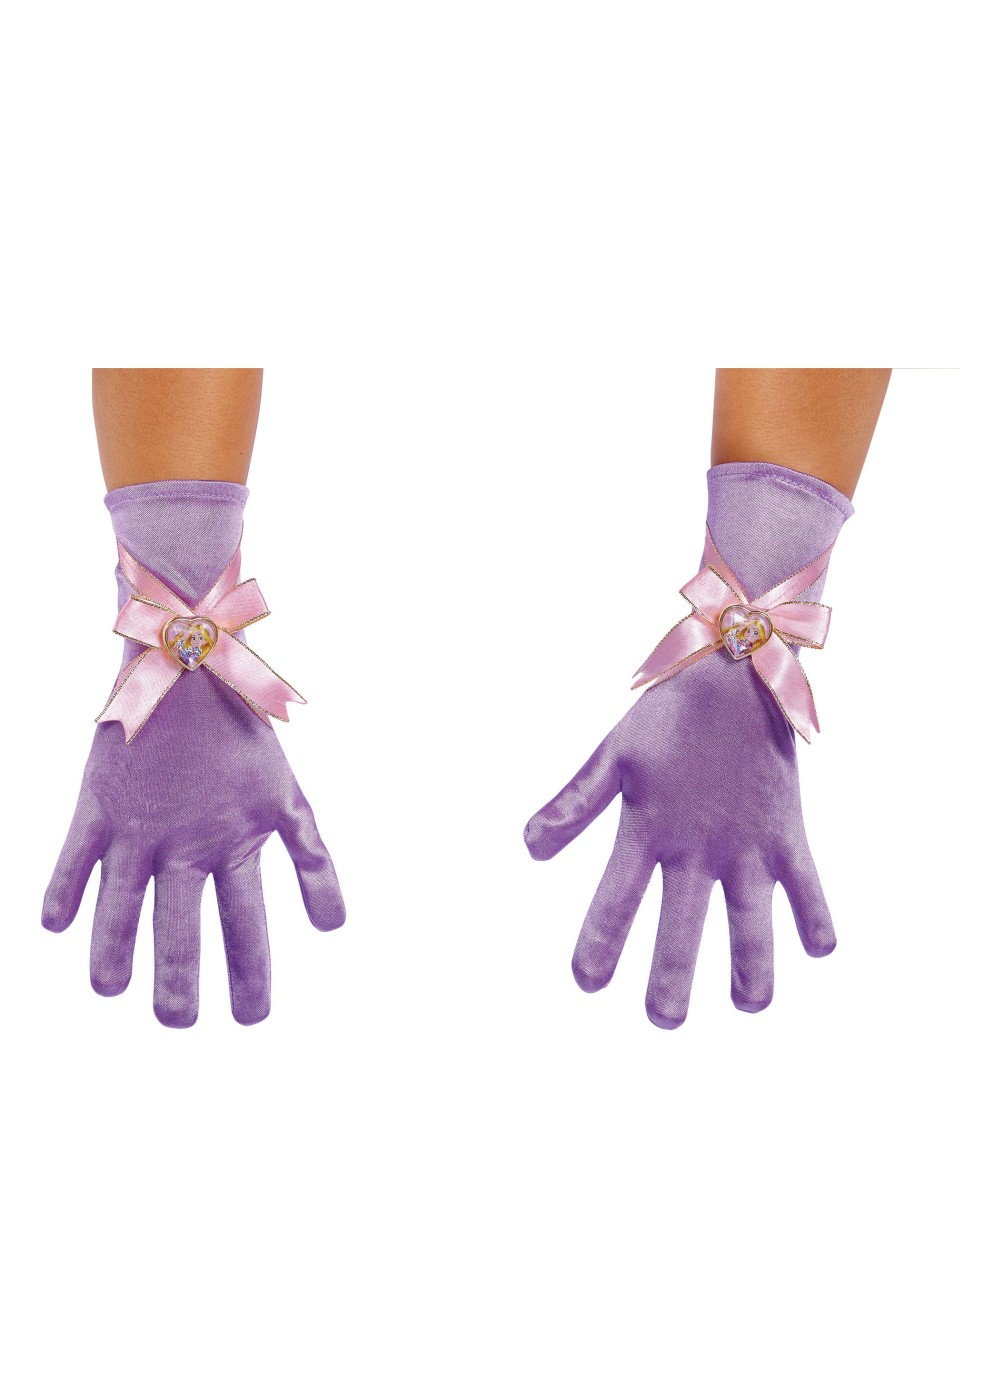 Kids Rapunzel Girls Costume Gloves